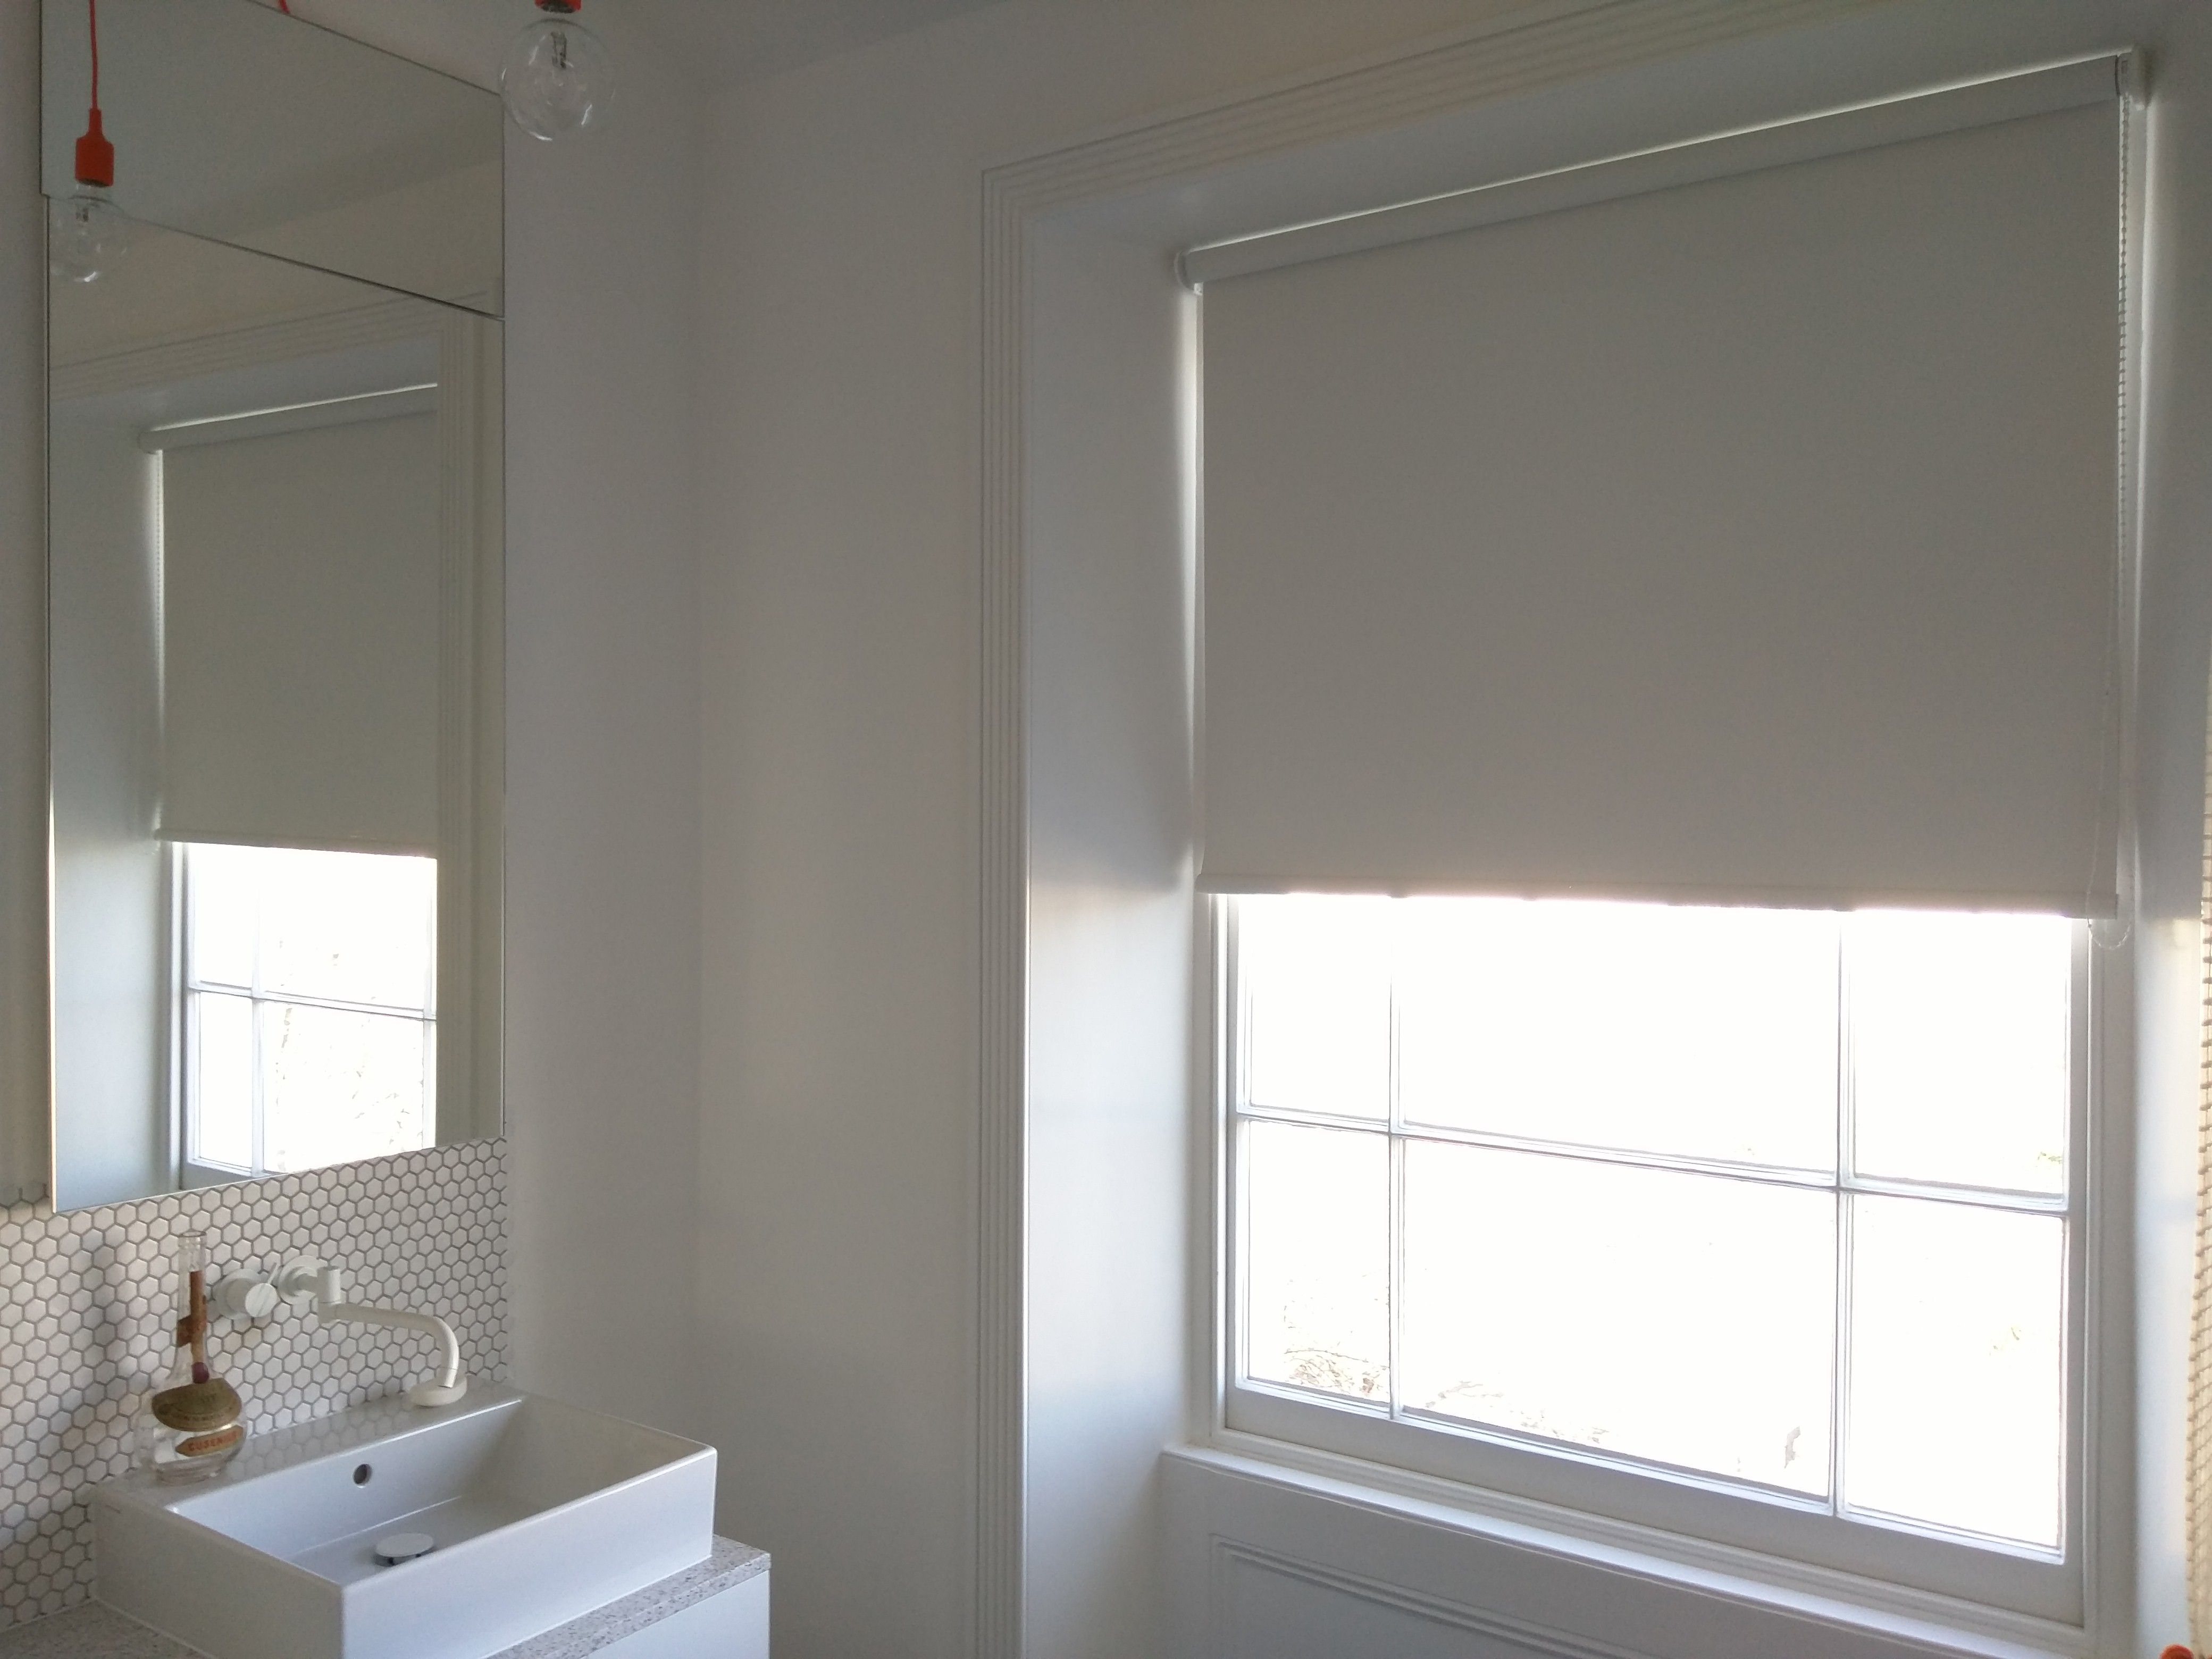 Window blinds for bathrooms - Bathroom Blind In Blackout Fabric White Roller Blind Modern Minimalist Interior Sash